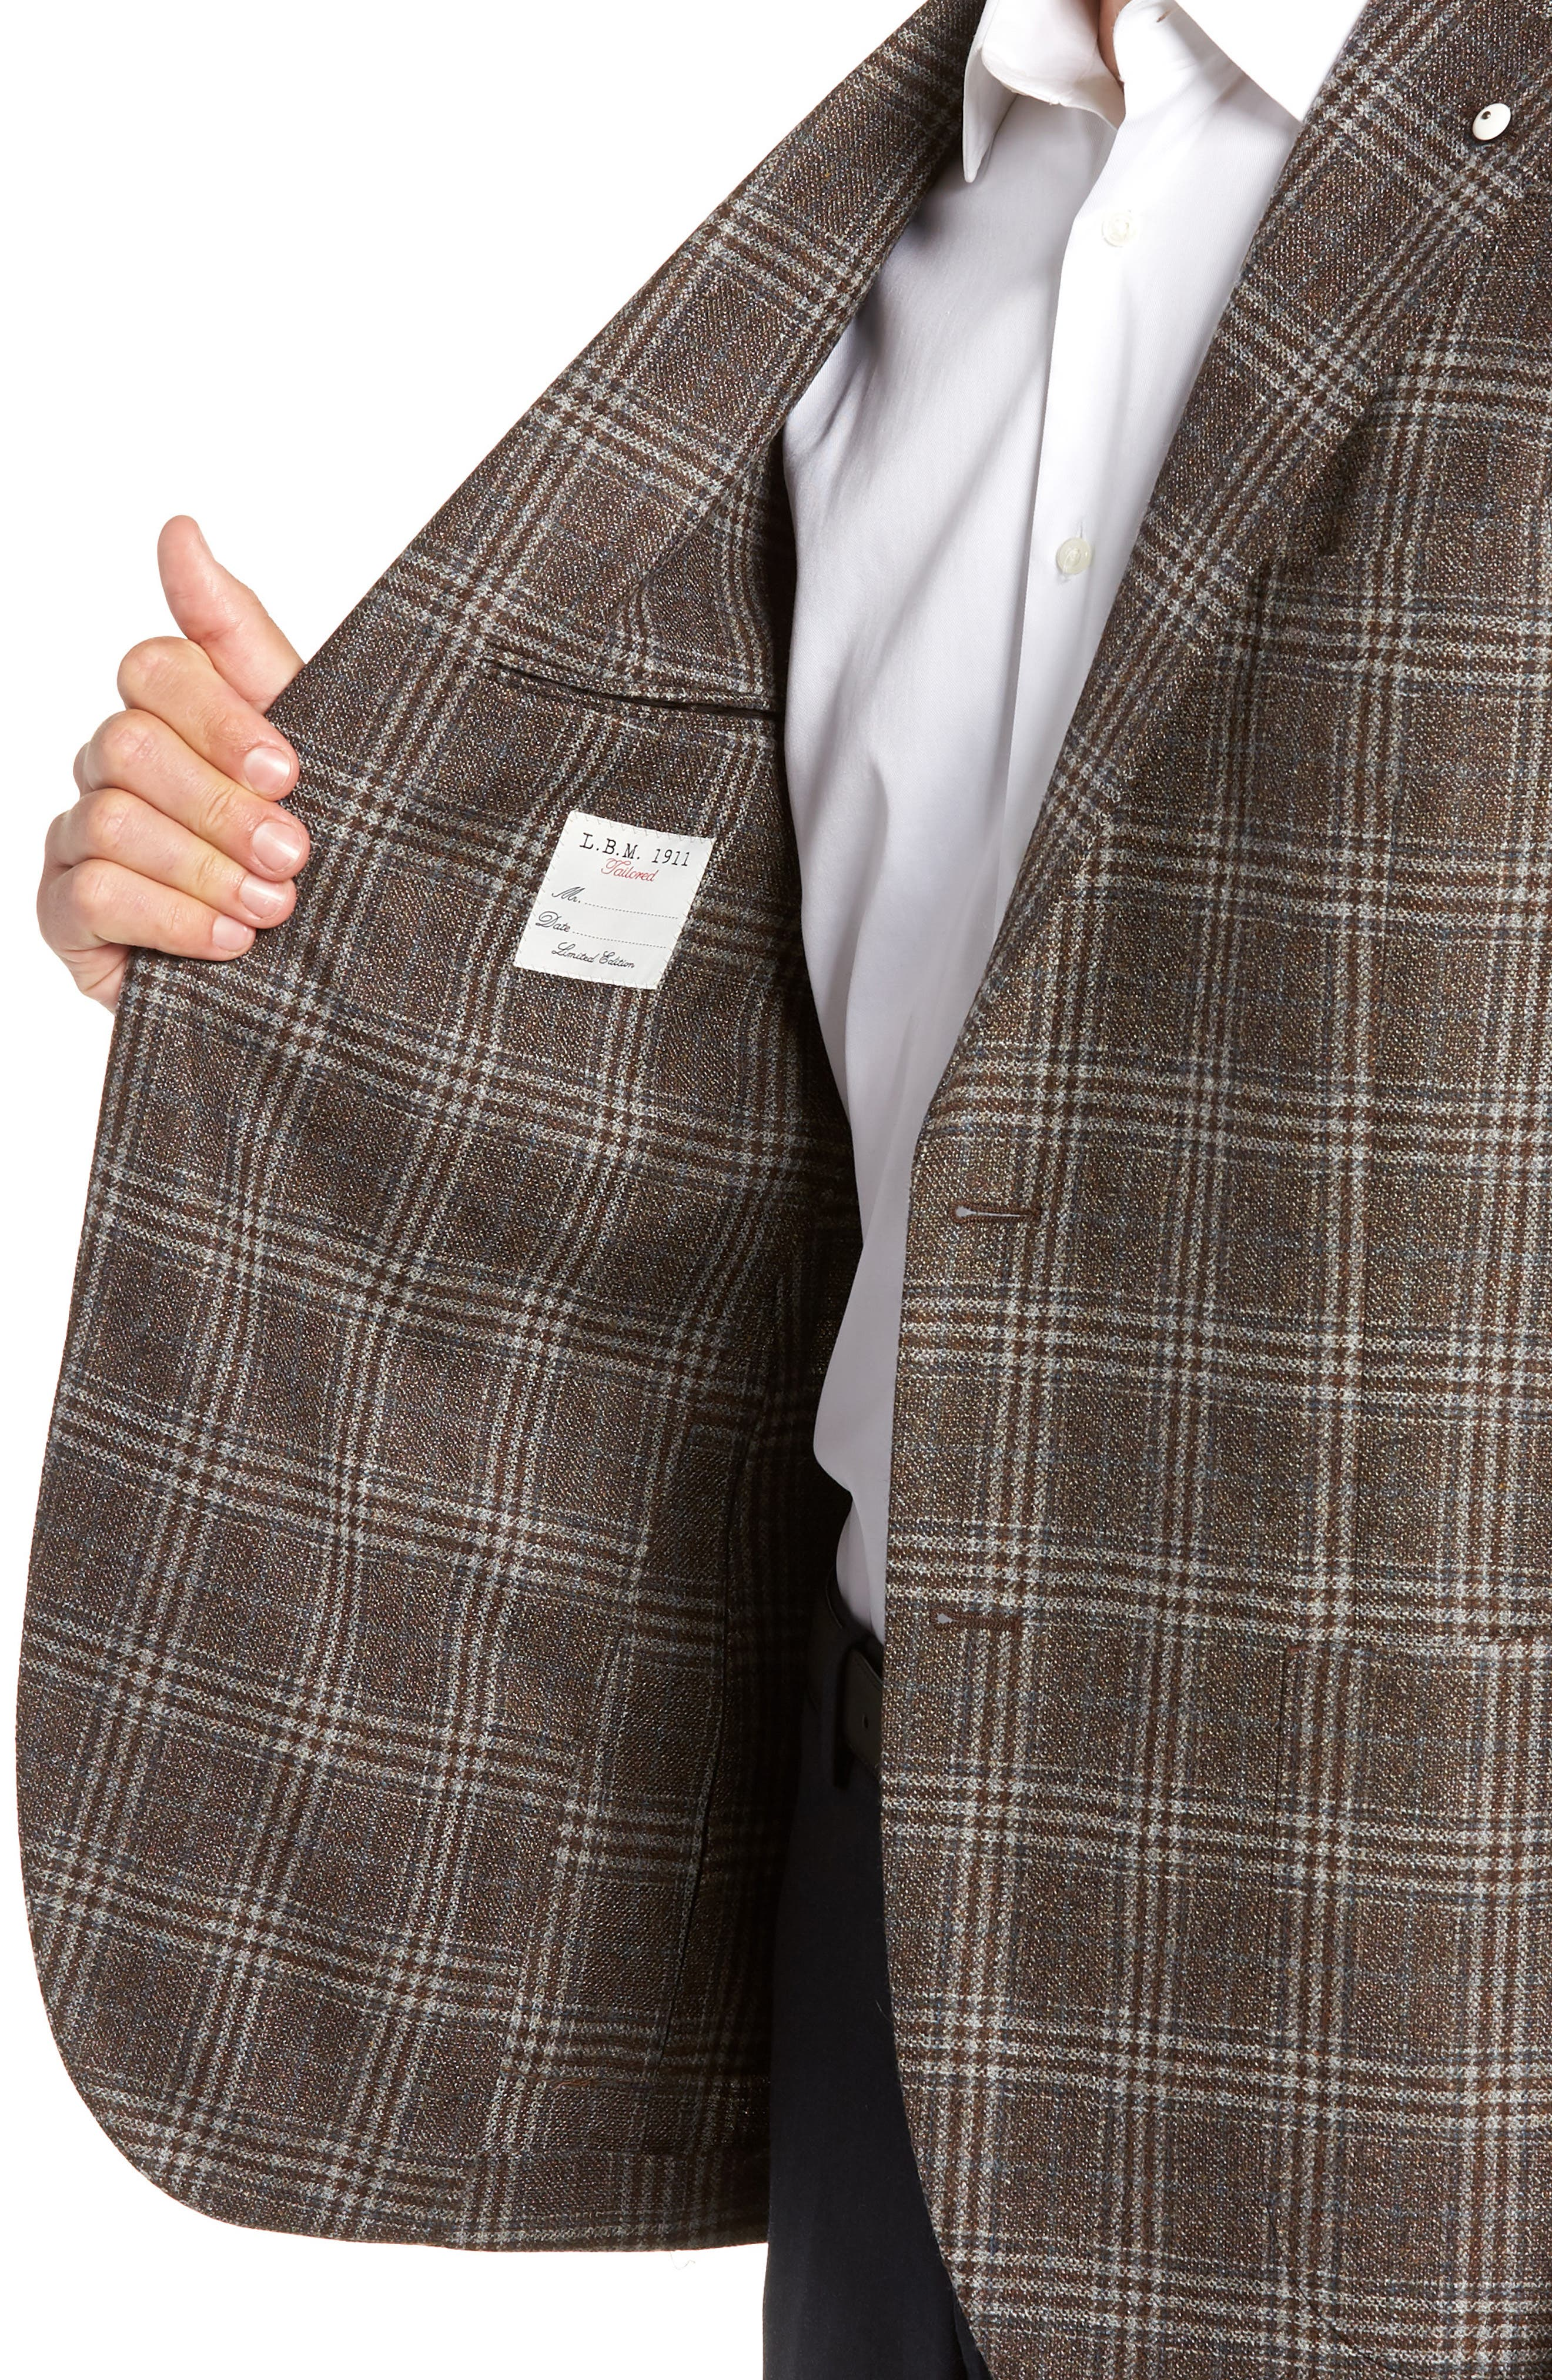 L.B.M 1911 Classic Fit Plaid Wool Sport Coat,                             Alternate thumbnail 4, color,                             BROWN